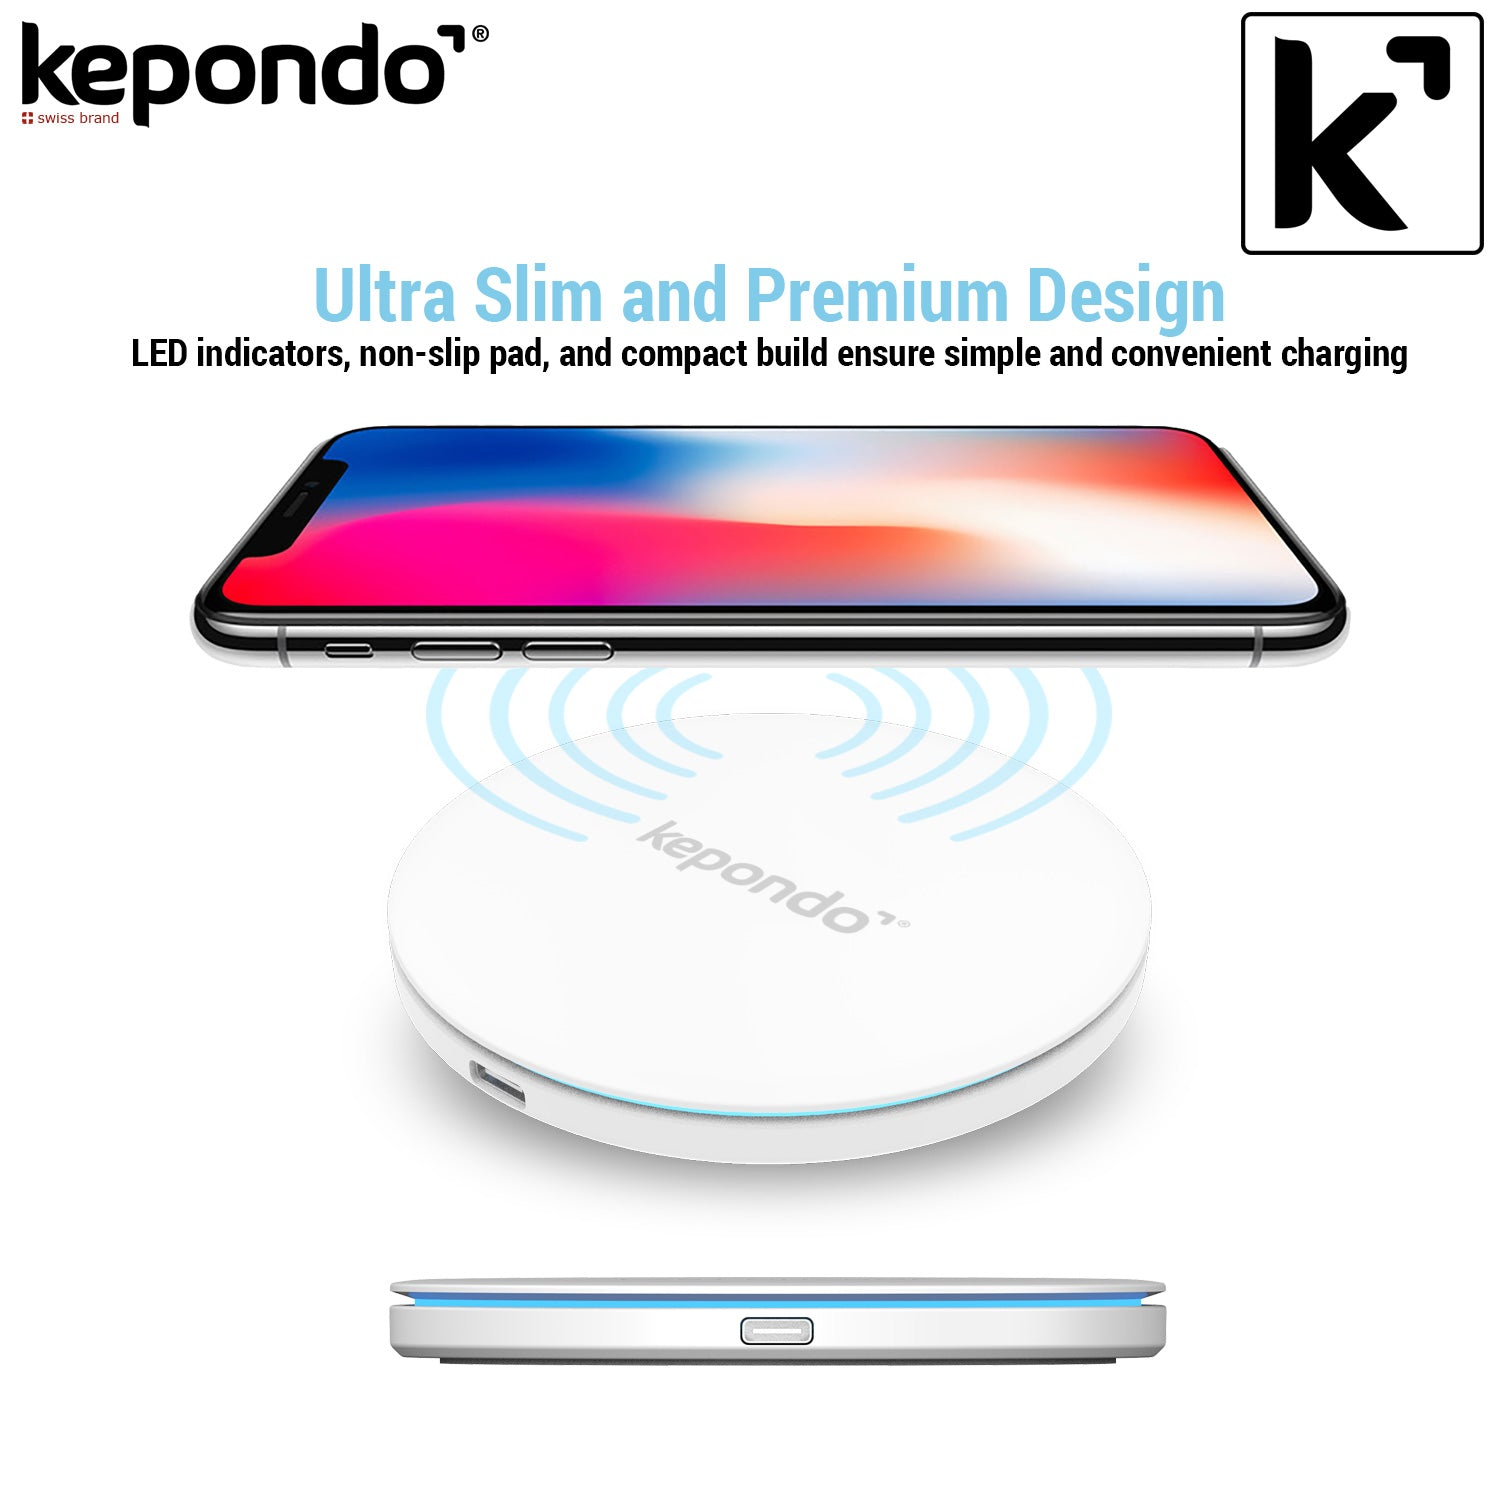 Fast Wireless Charger Kepondo